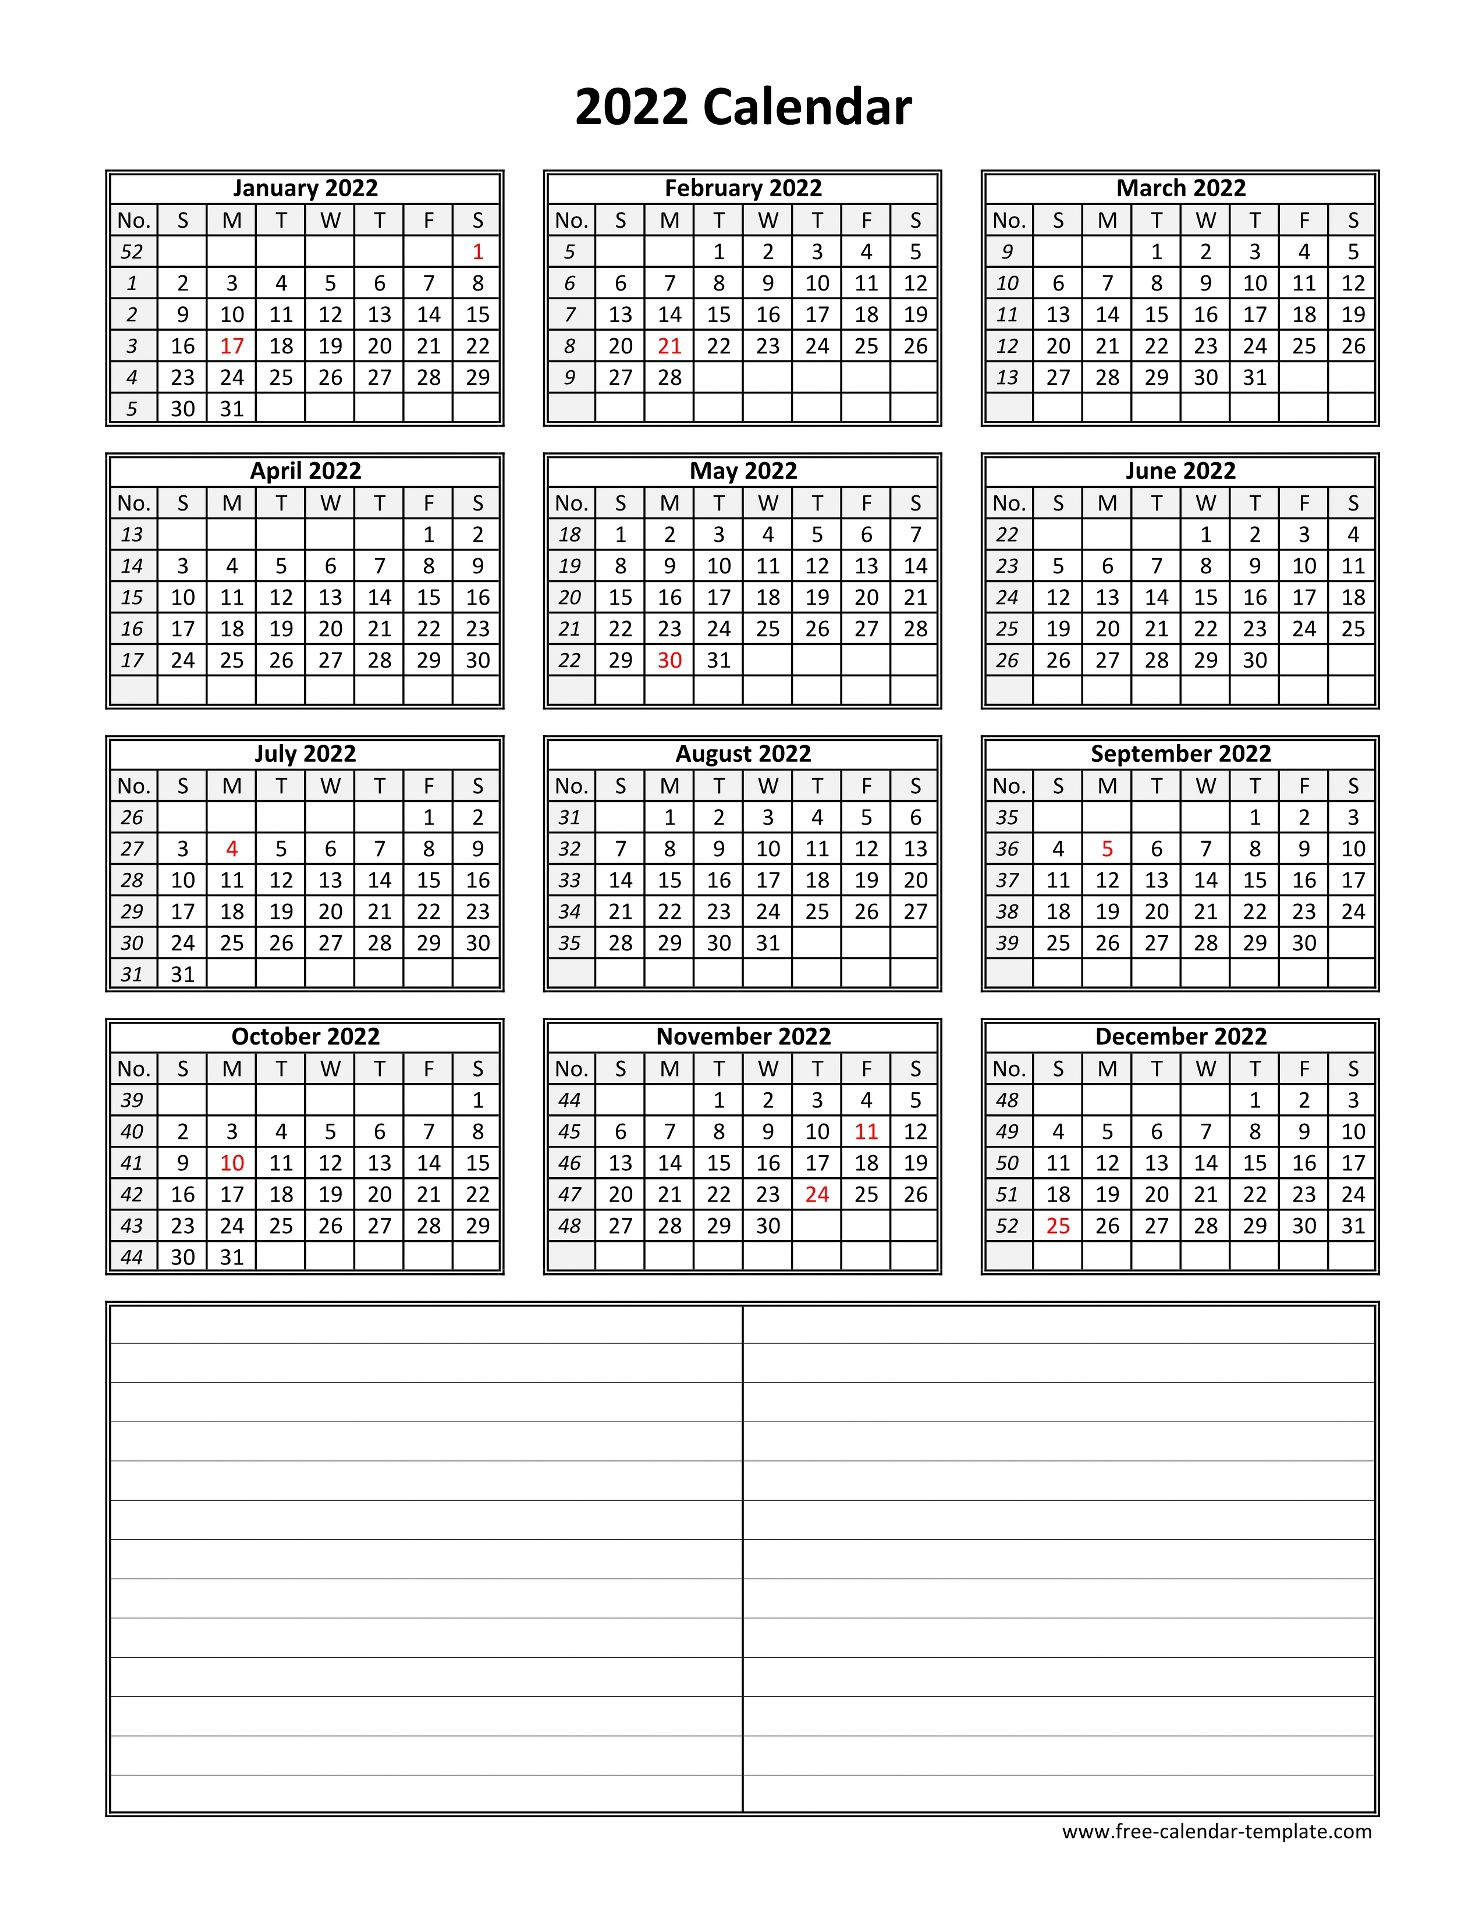 Download free printable calendar for 2022. Yearly 2022 printable calendar with space for notes | Free ...